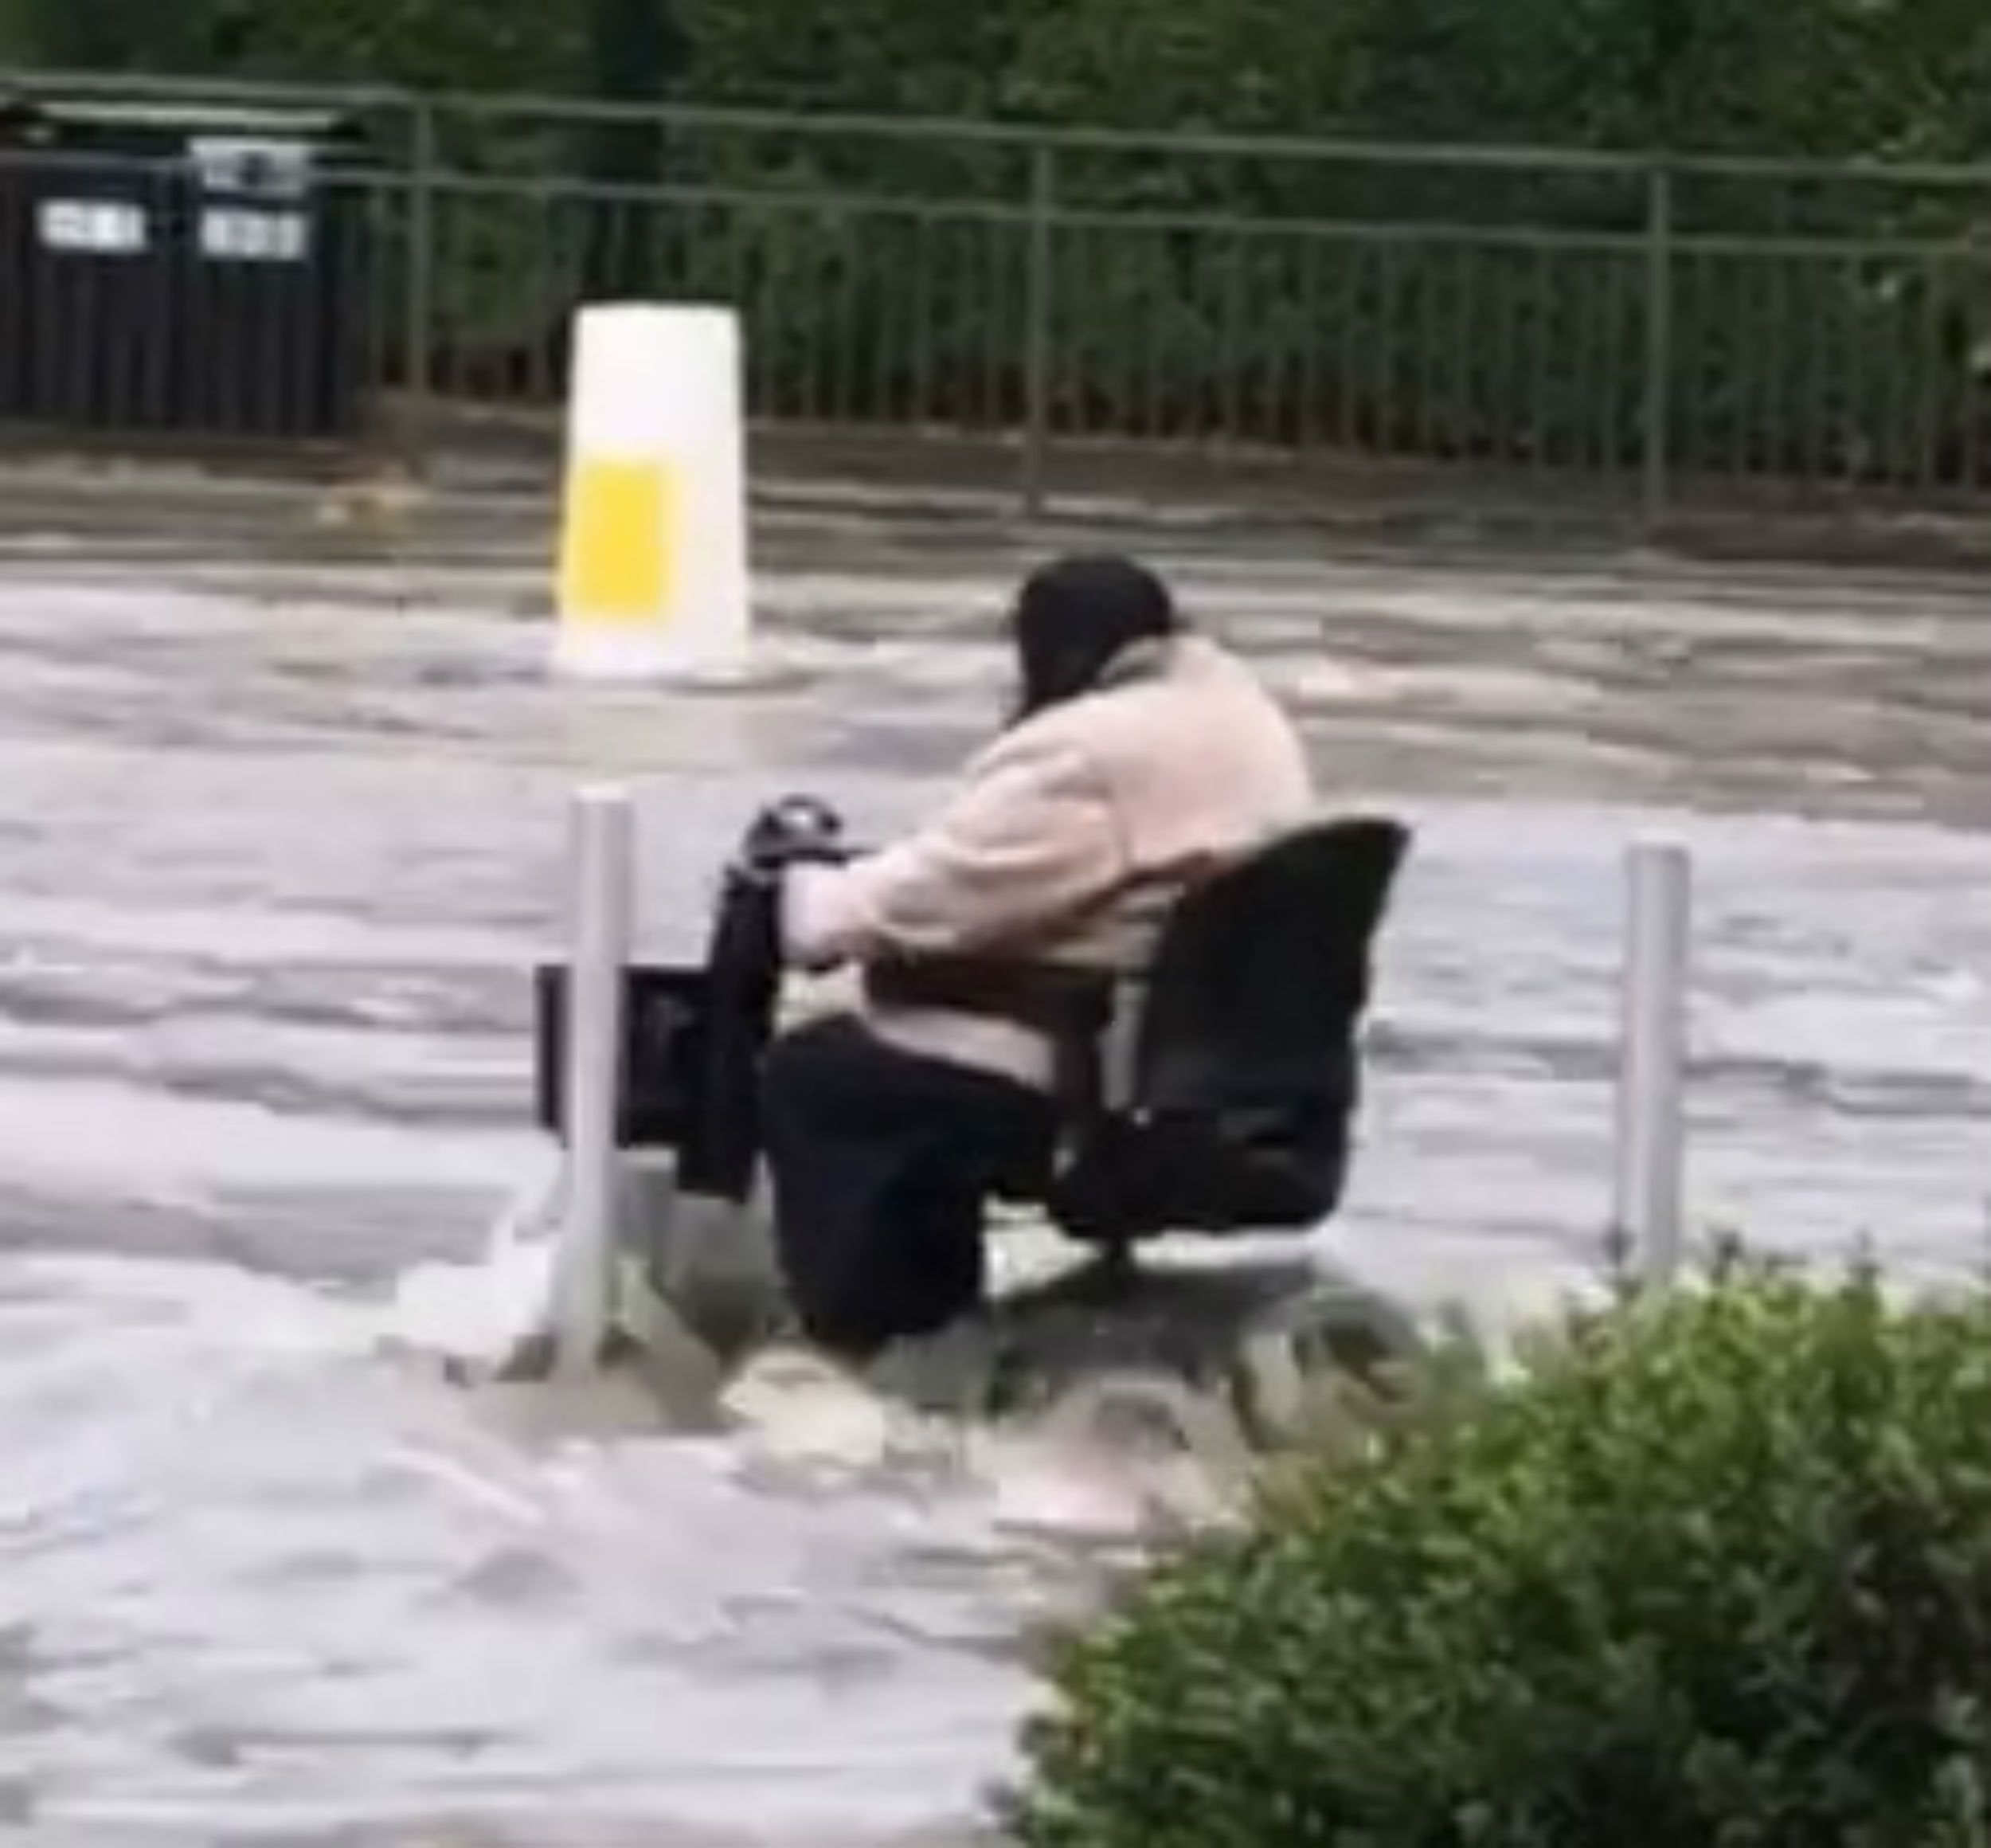 An elderly lady powers her way through the flood water on her mobility scooter in Sheffield